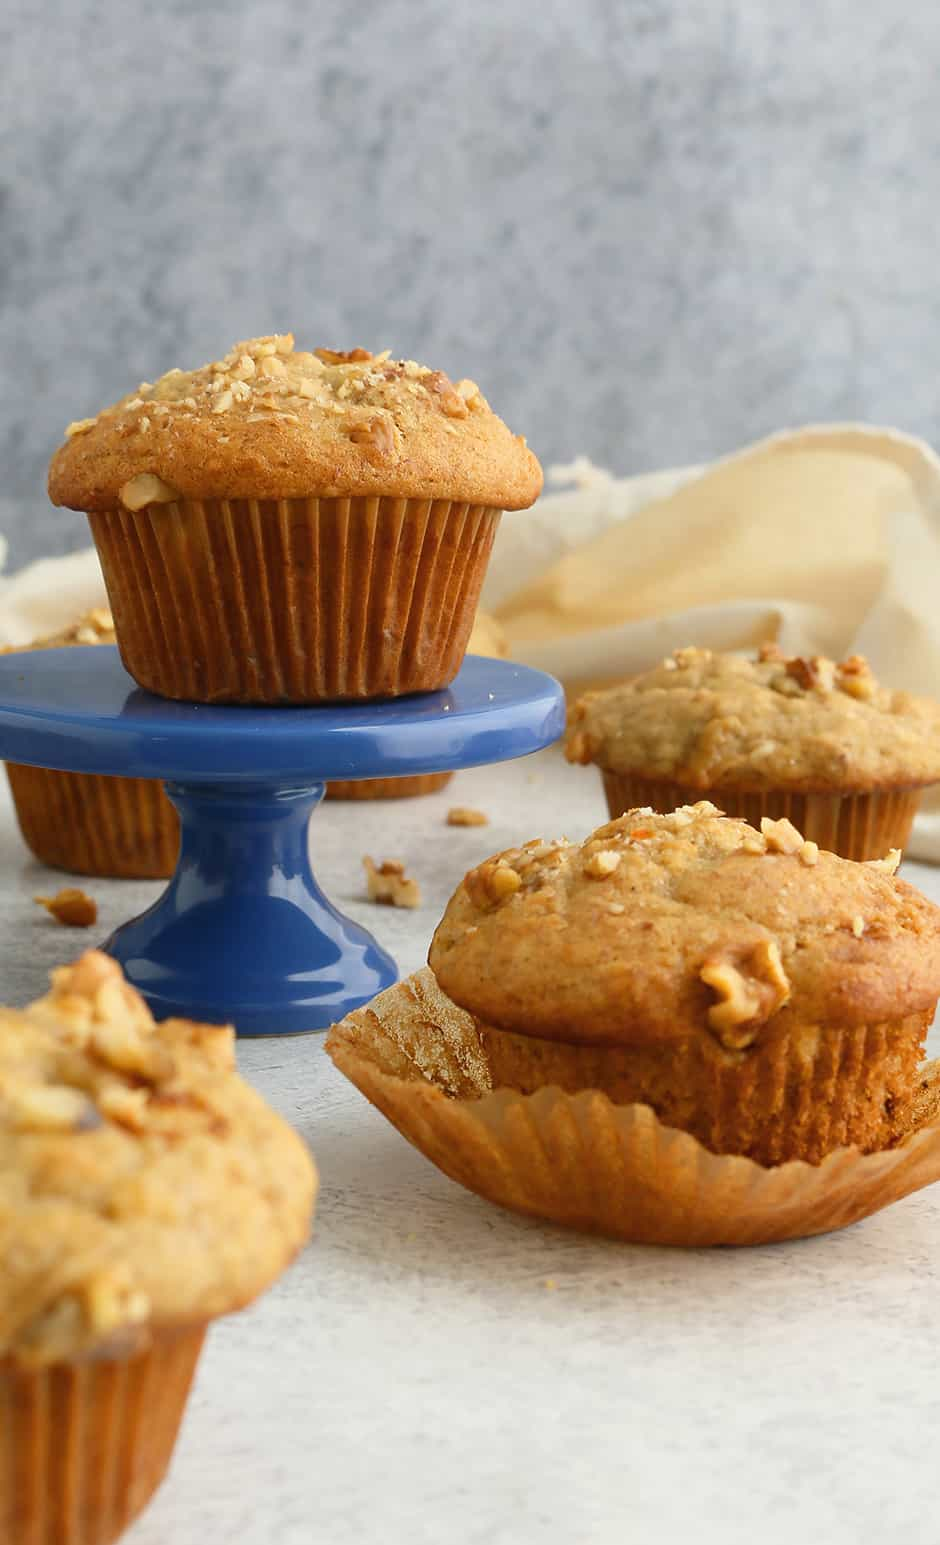 an eggless banana muffin placed on a blue cupcake stand along with more muffins